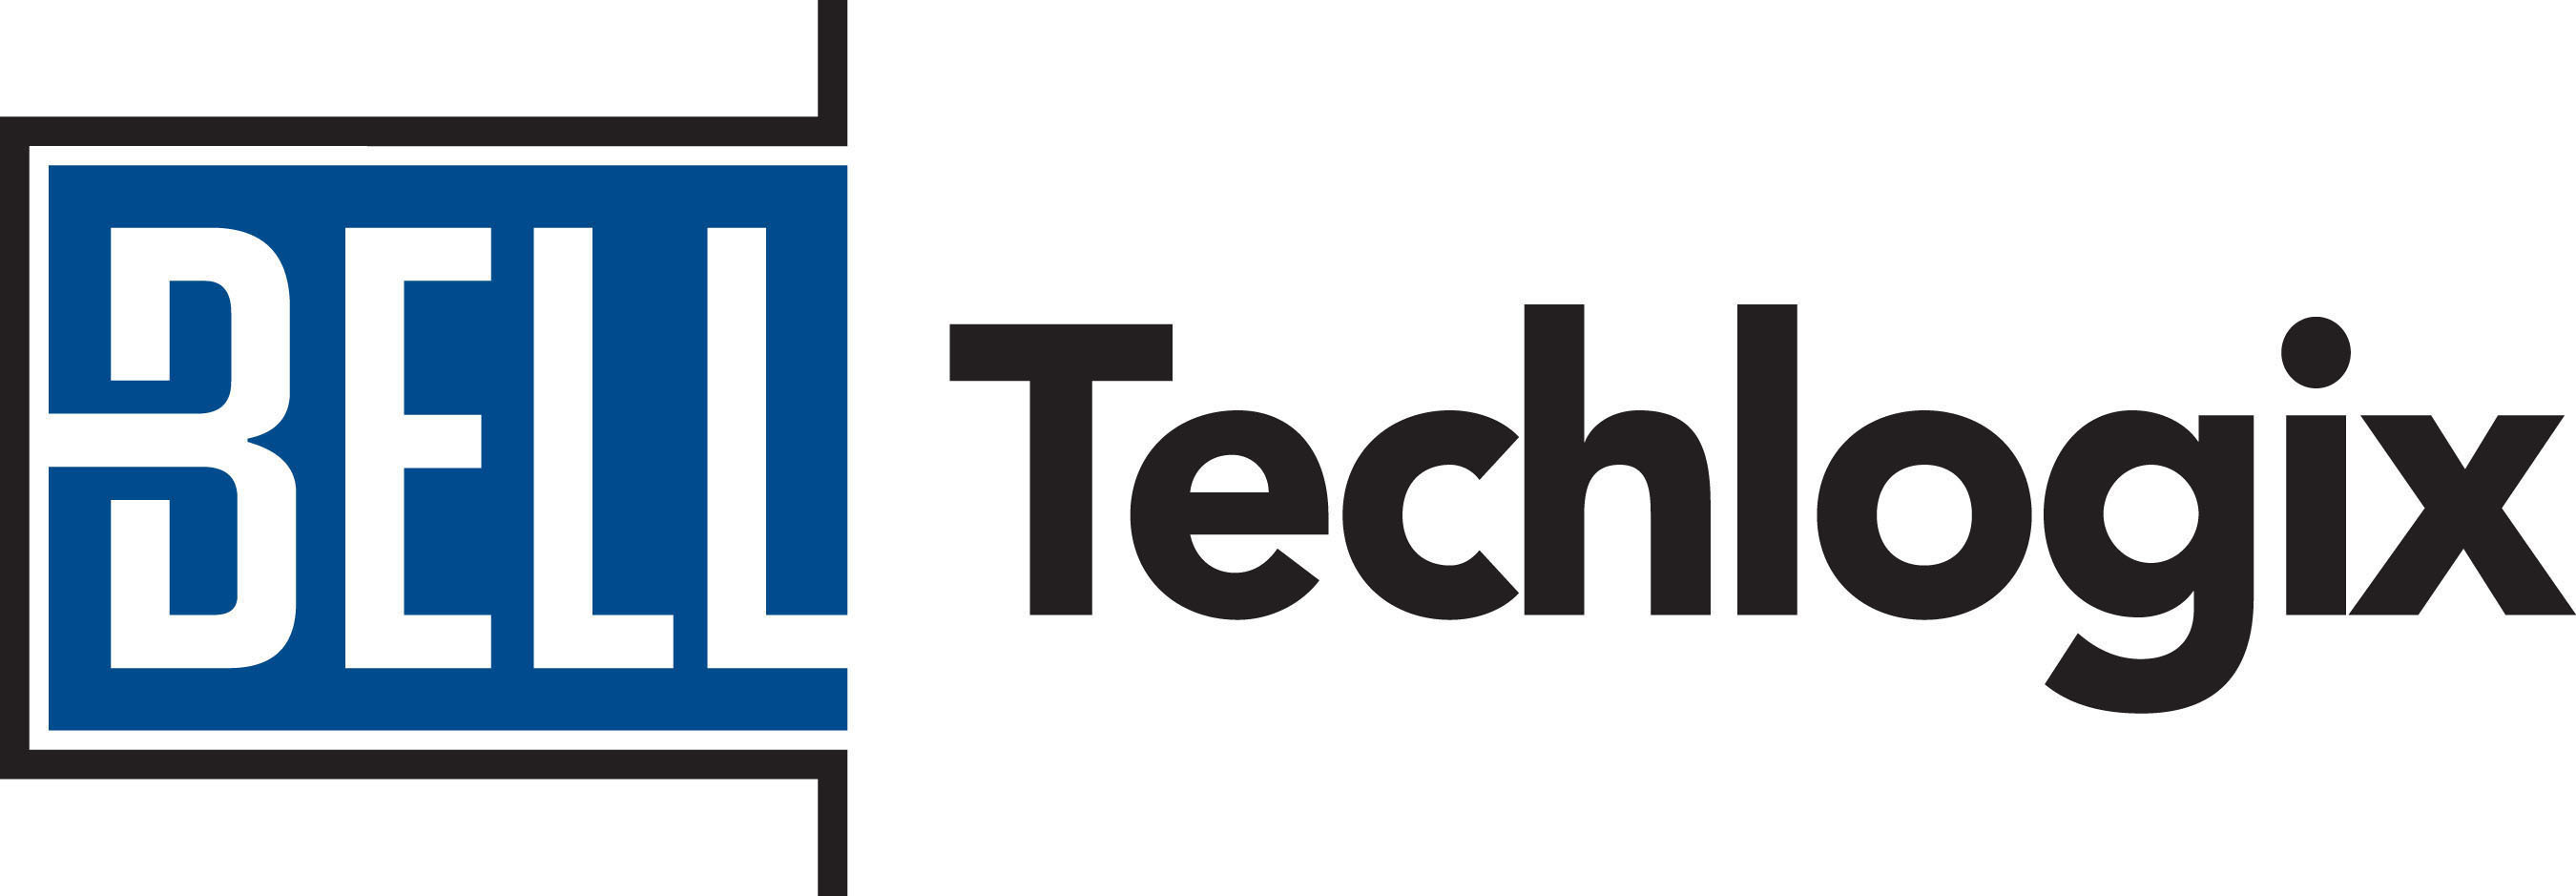 Bell Techlogix - information technology managed services and solutions.